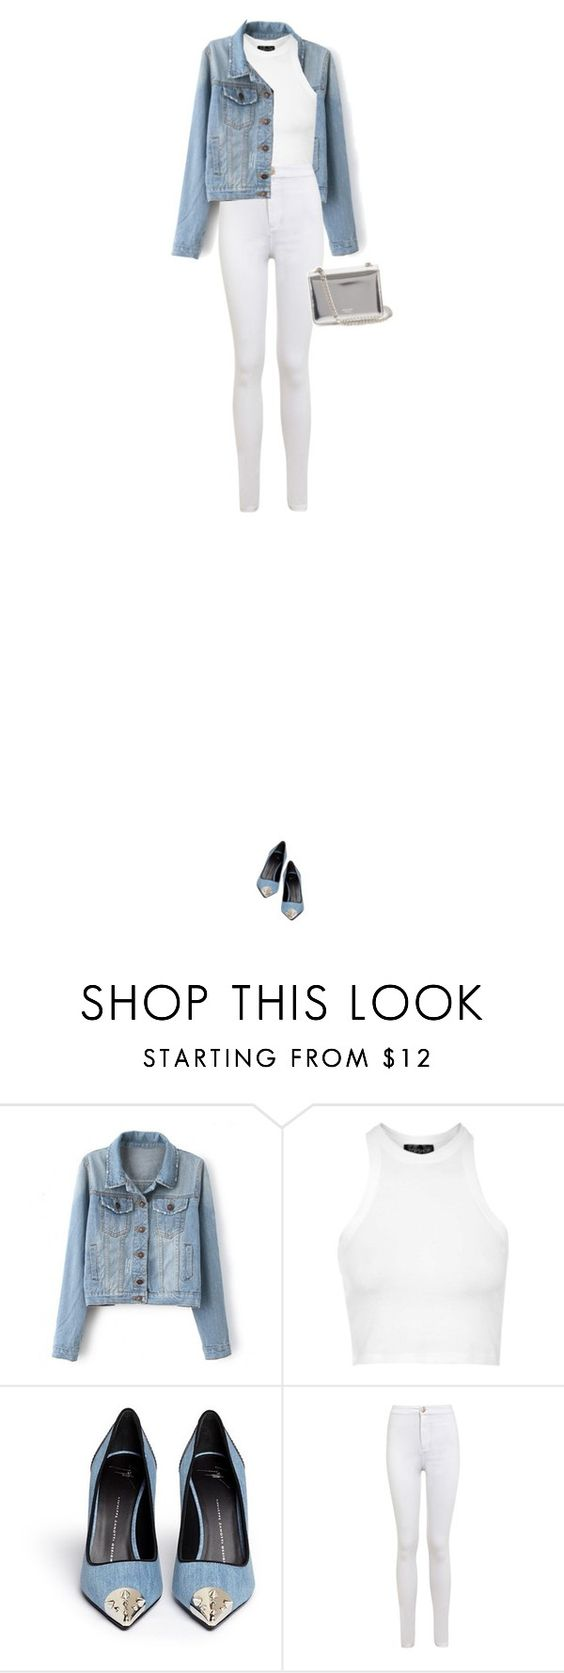 """Untitled #373"" by vjdfashion ❤ liked on Polyvore featuring mode, Topshop, Giuseppe Zanotti, Miss Selfridge, Rochas, women's clothing, women, female, woman et misses"